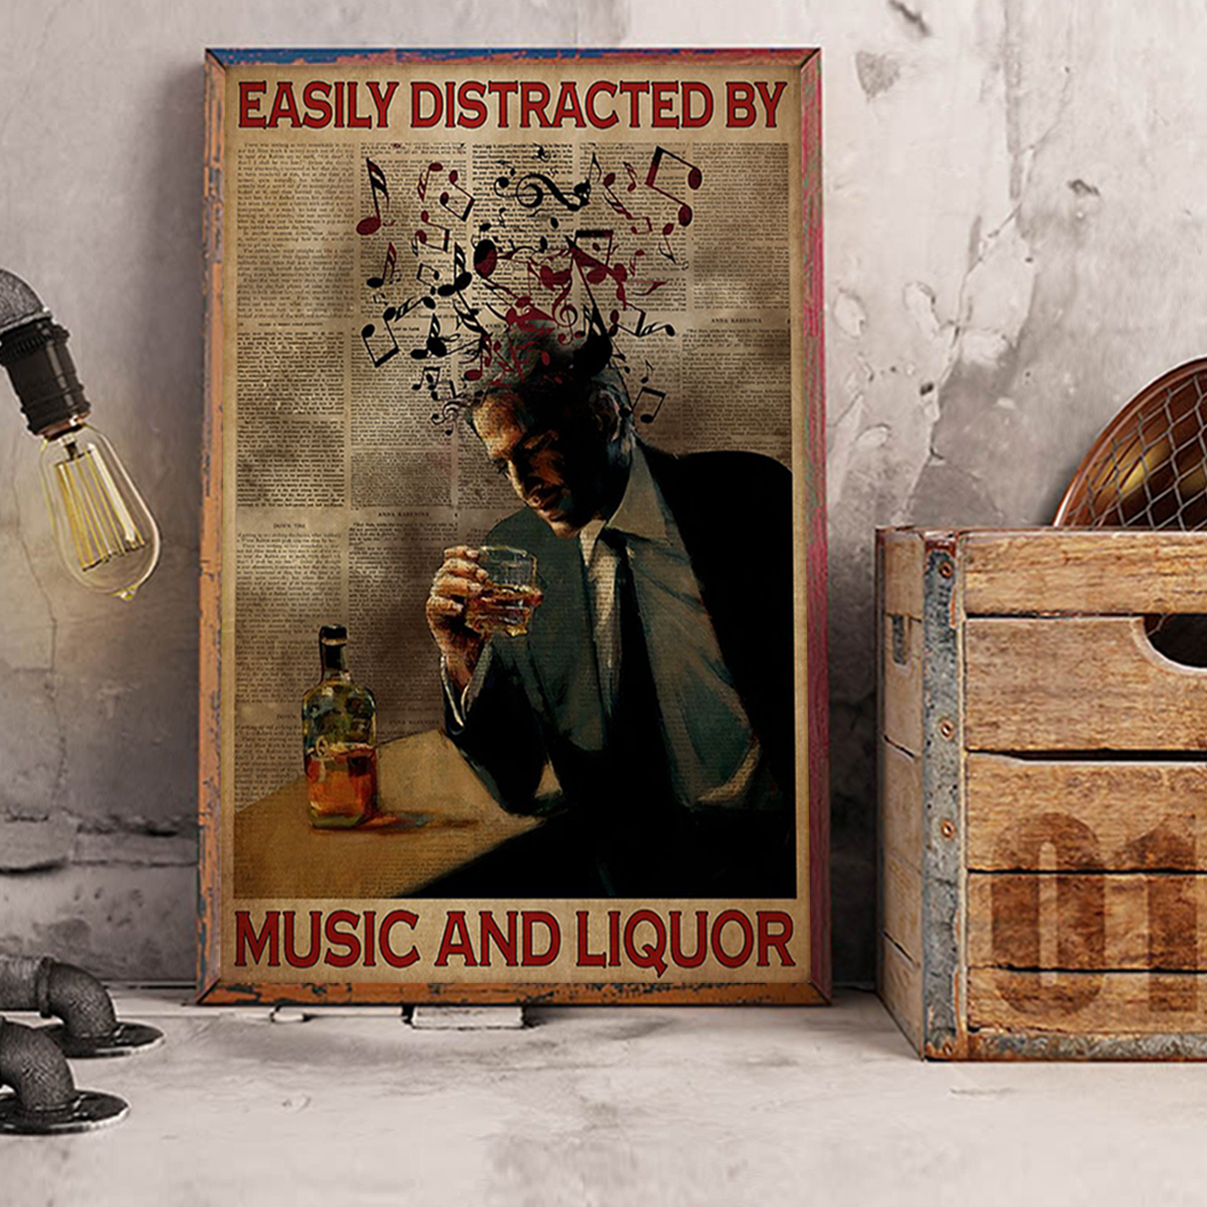 Man easily distracted by music and liquor poster A2